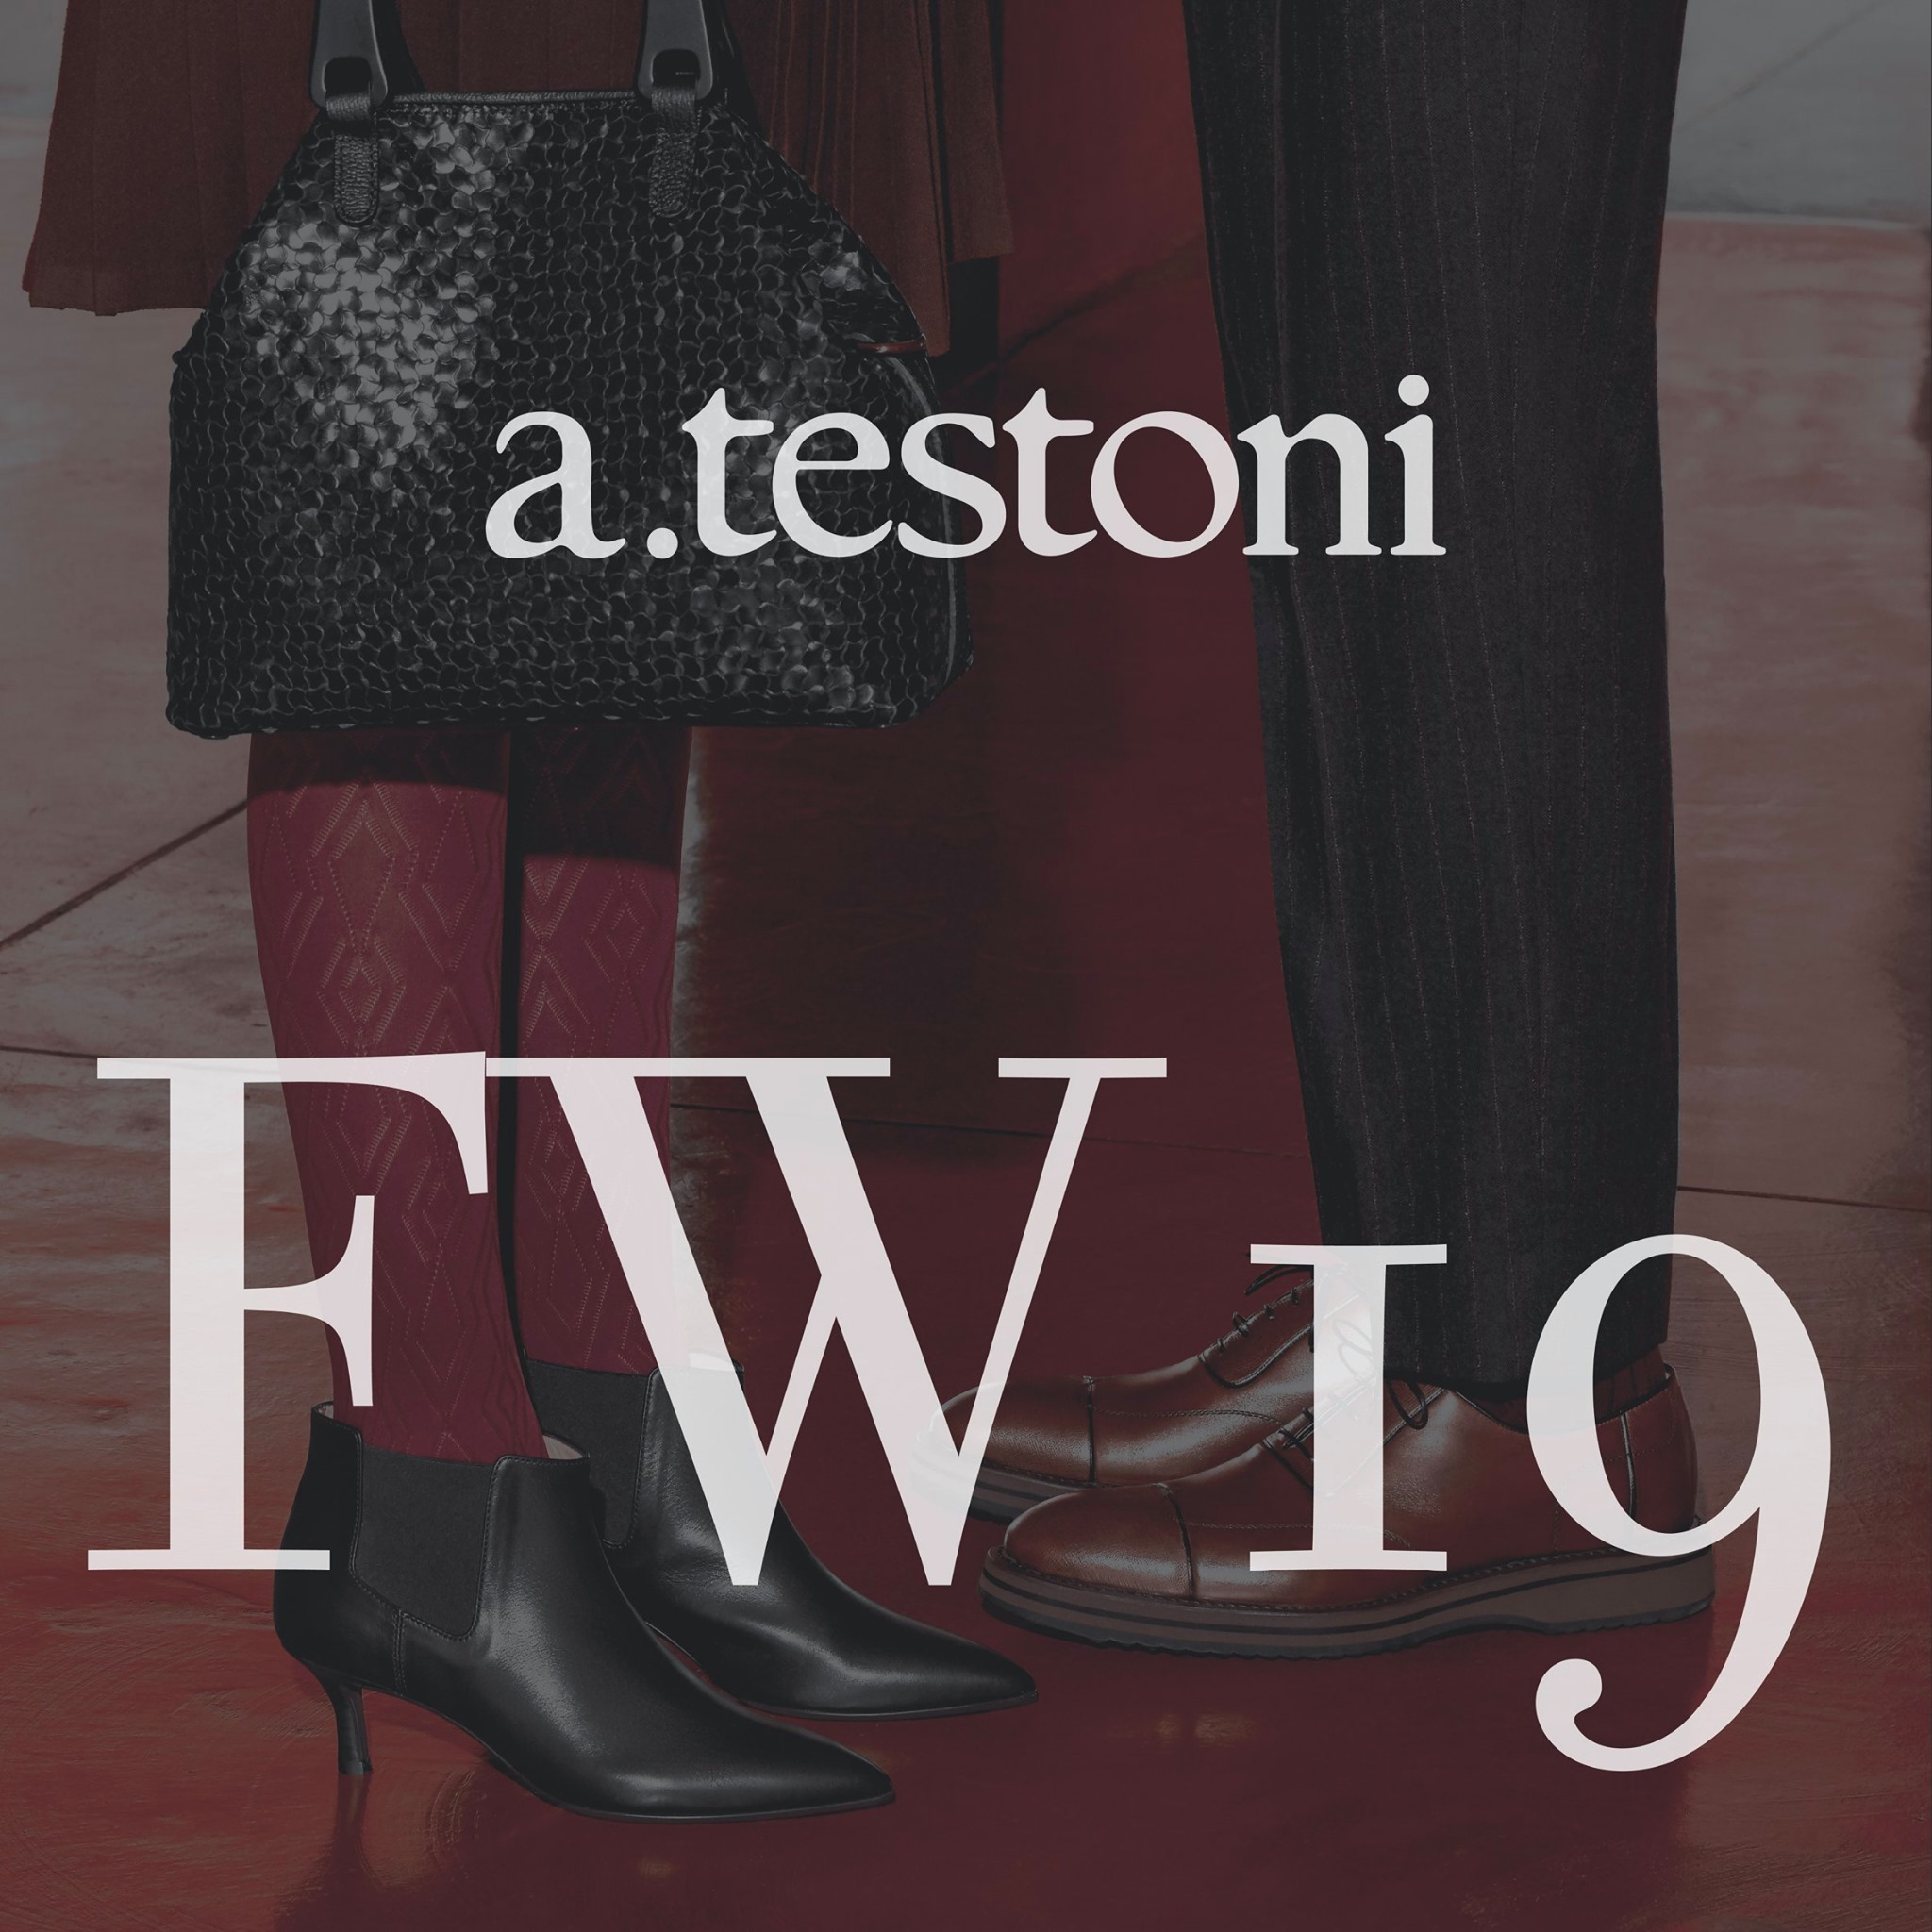 The a.testoni FW19 collection pays homage to the 90 years of history that lie at the brand's back. History that is deeply rooted in outstanding Italian craftsmanship tradition, the ceaseless pursuit of quality, a love for the very finest leather and a drive for innovation. #atestoni #shoes #fw1920 #luxury #elegance ► Follow our Instagram: @a.testoniHongKong...